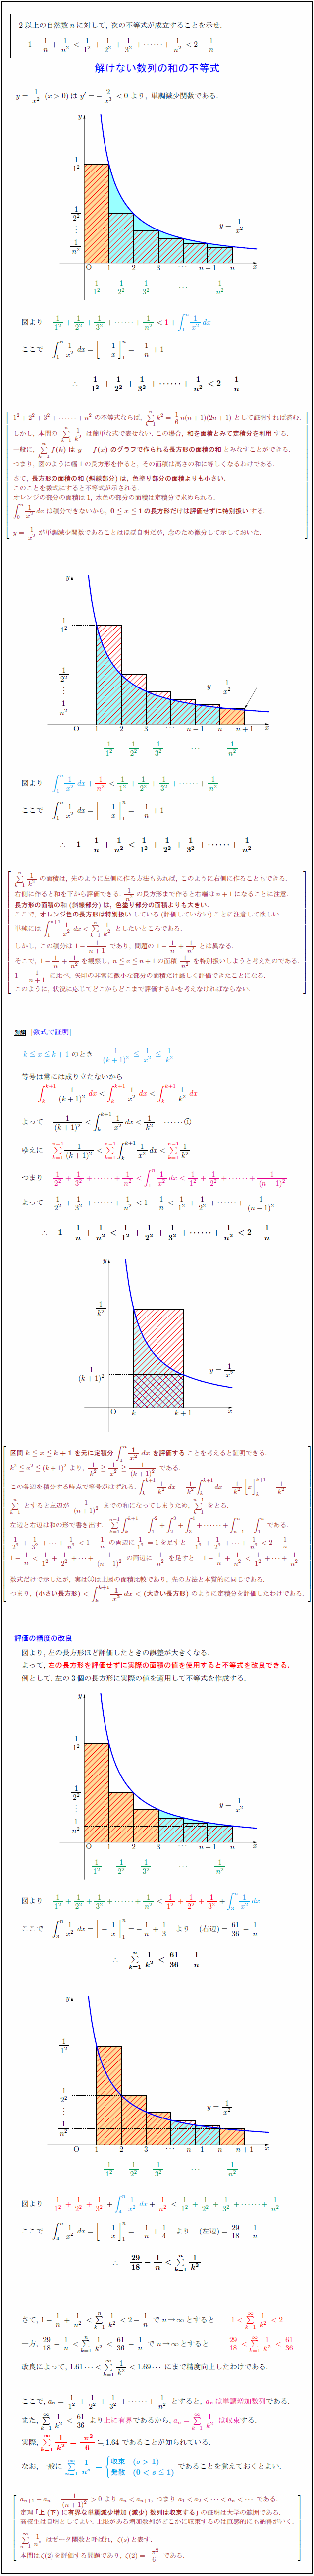 sequence-sum-inequality